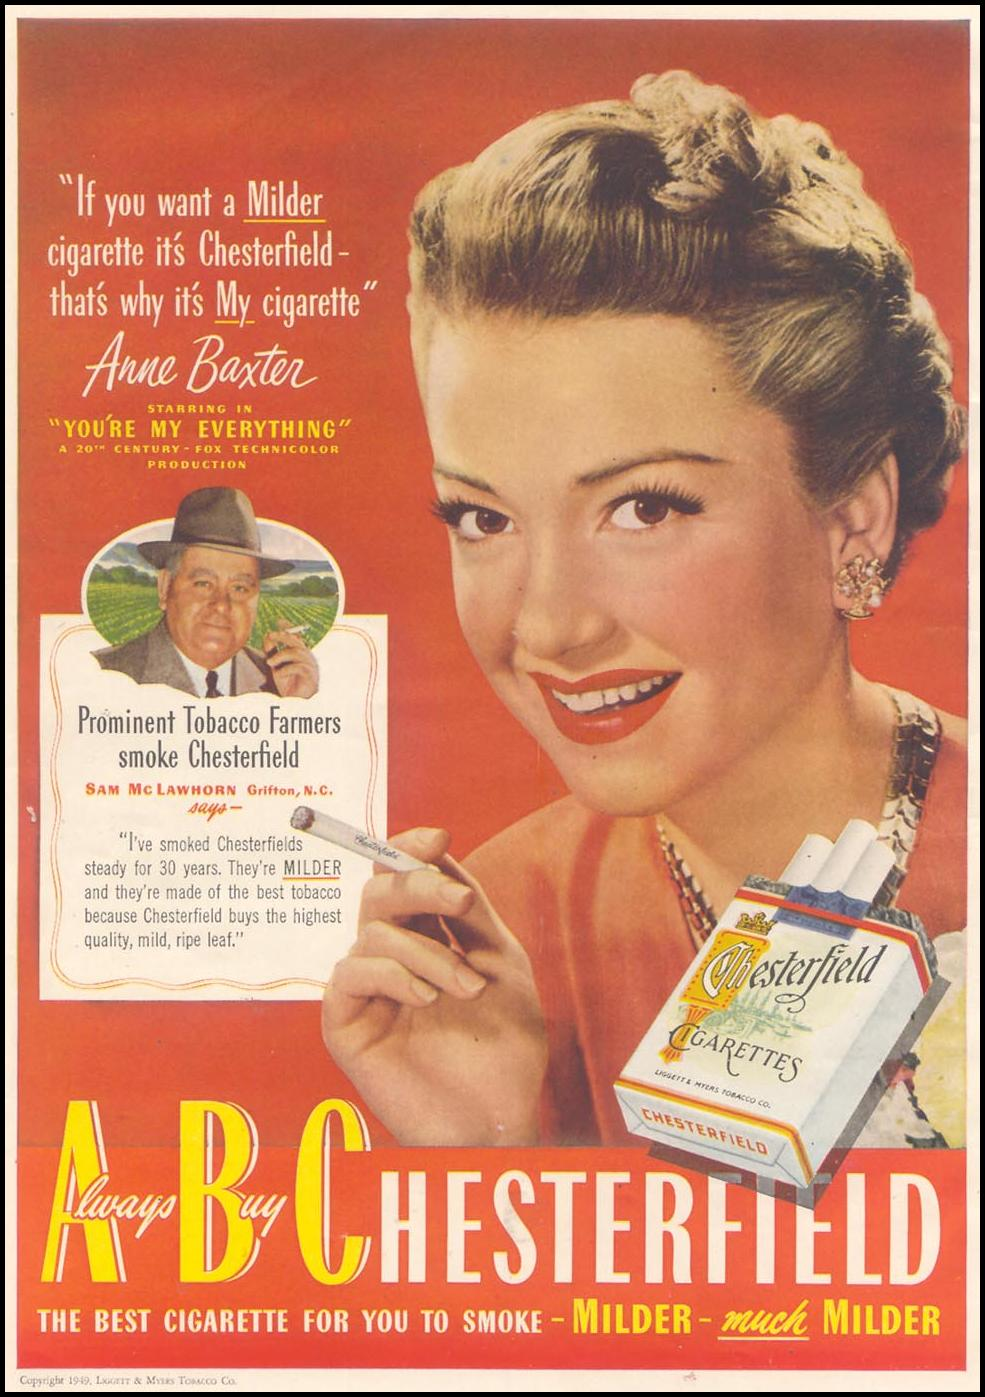 CHESTERFIELD CIGARETTES GOOD HOUSEKEEPING 07/01/1949